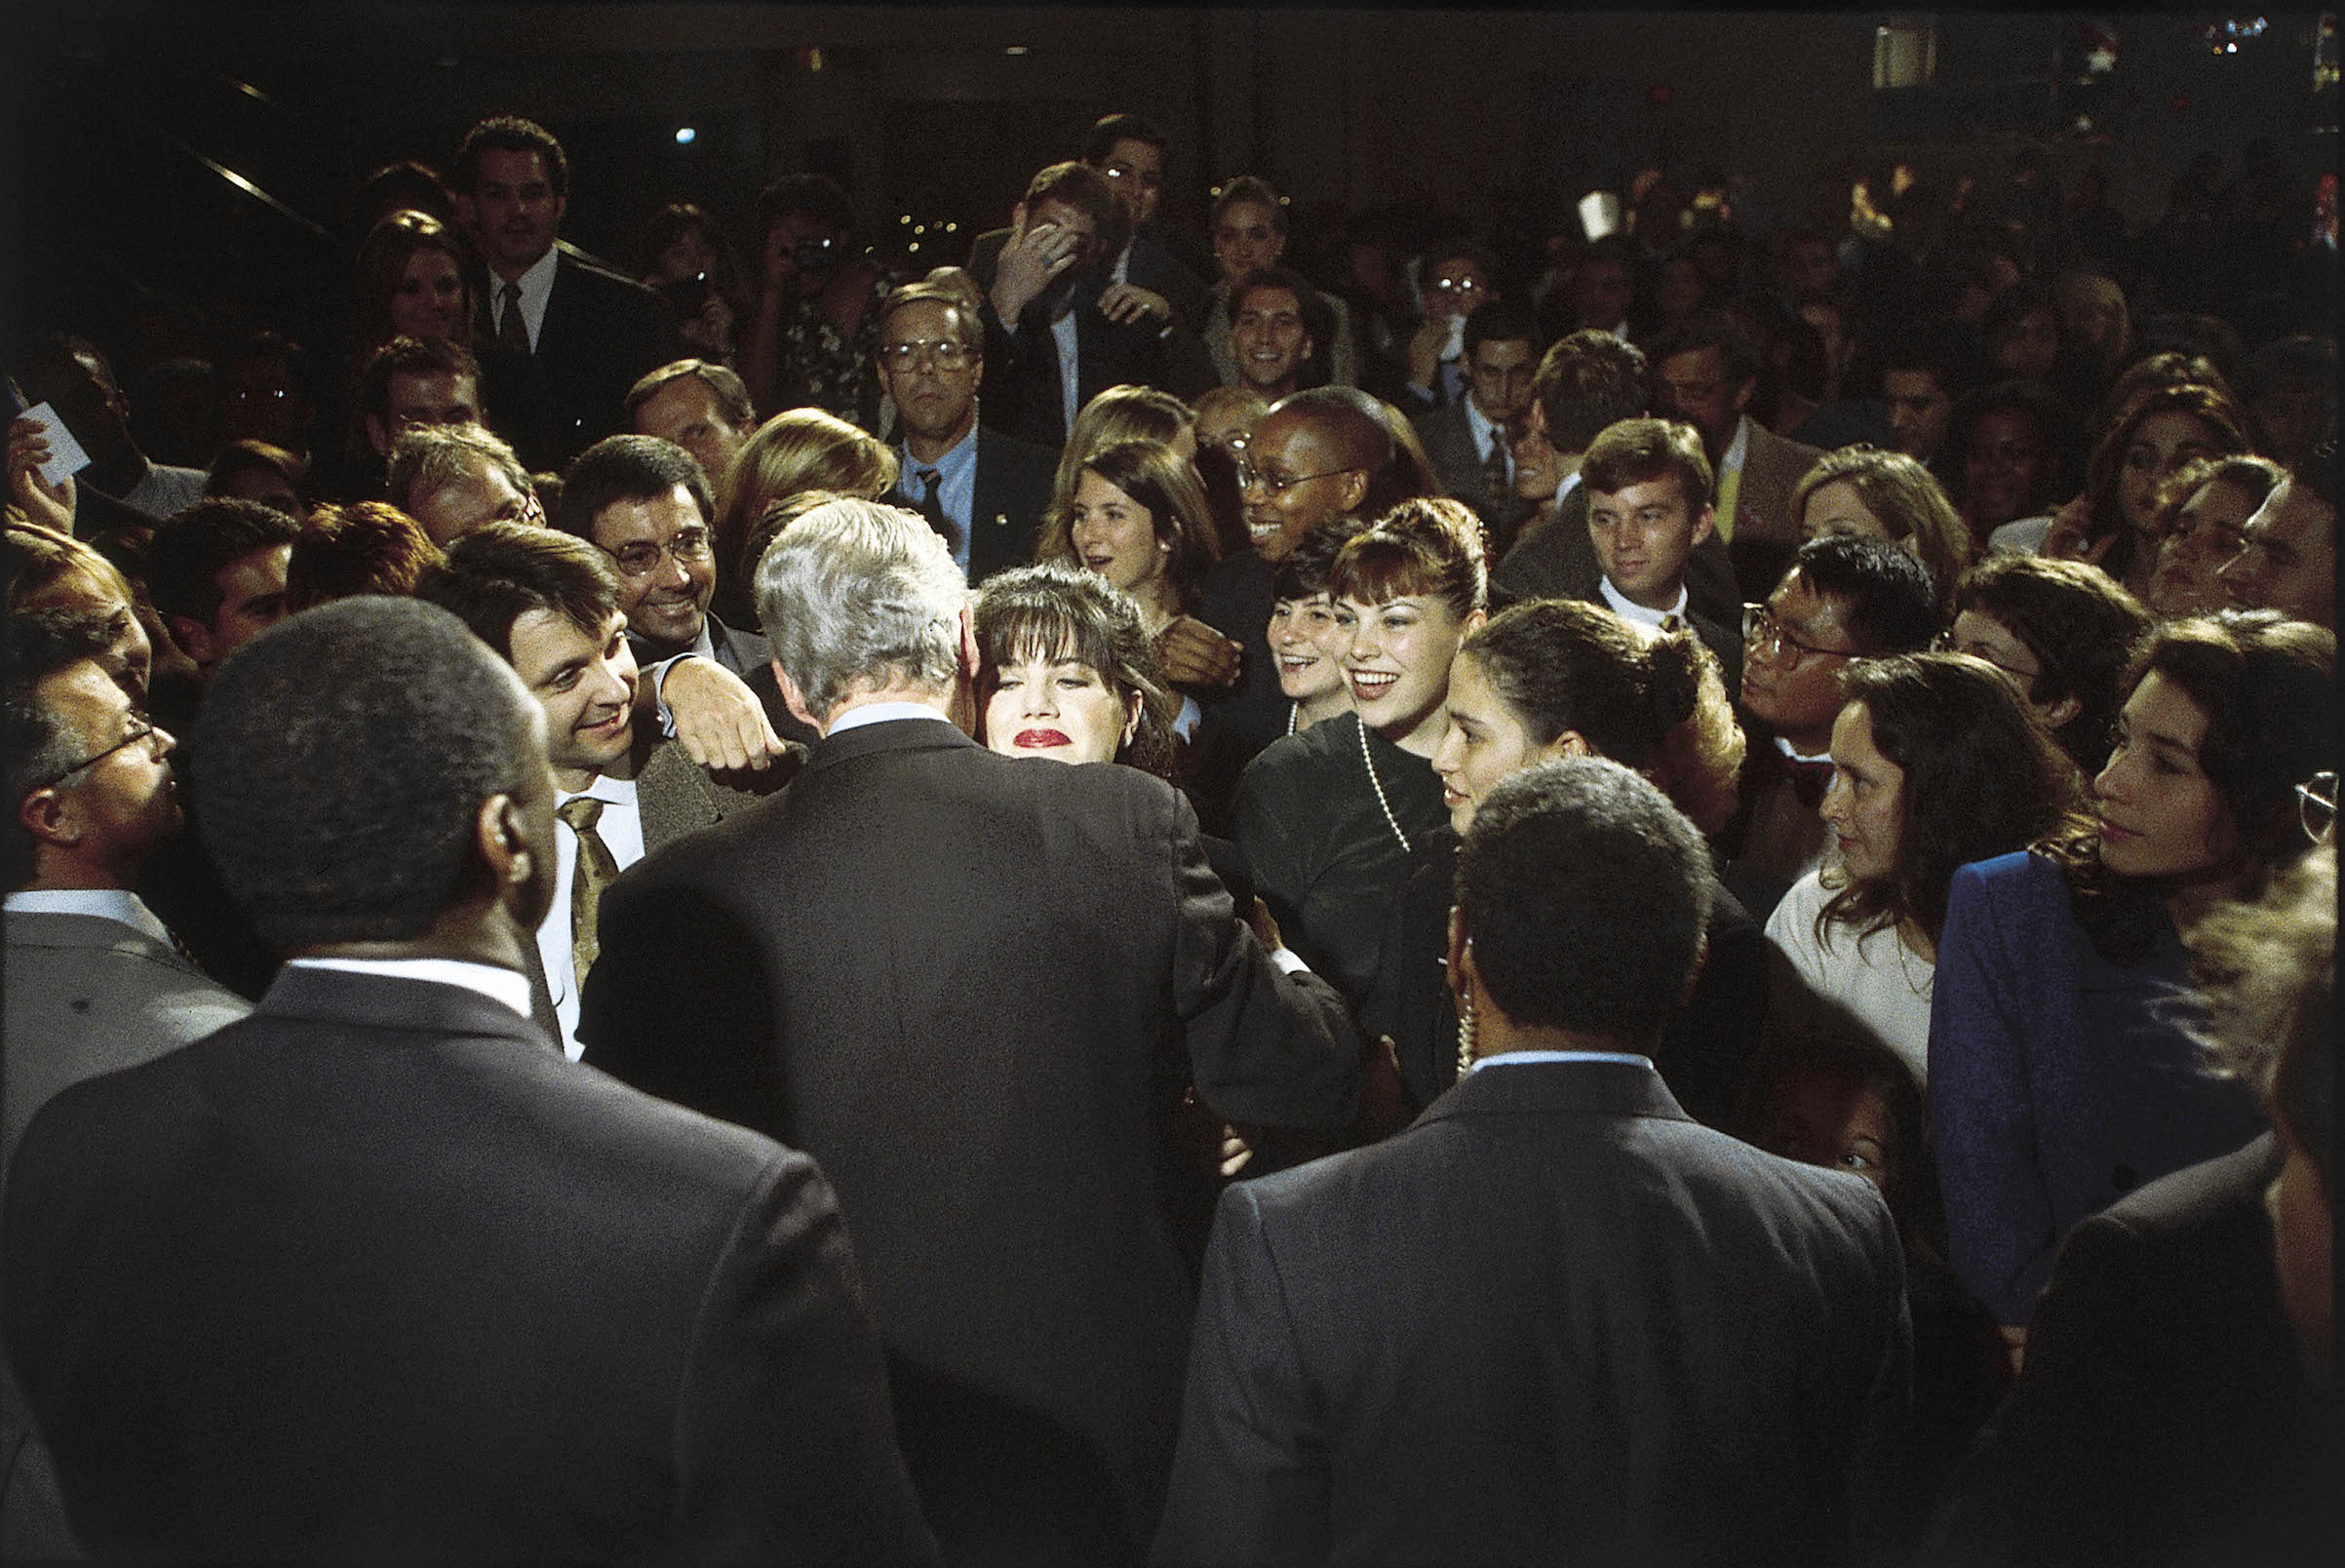 Bill Clinton hugs Monica Lewinsky at a fundraiser in 1996.